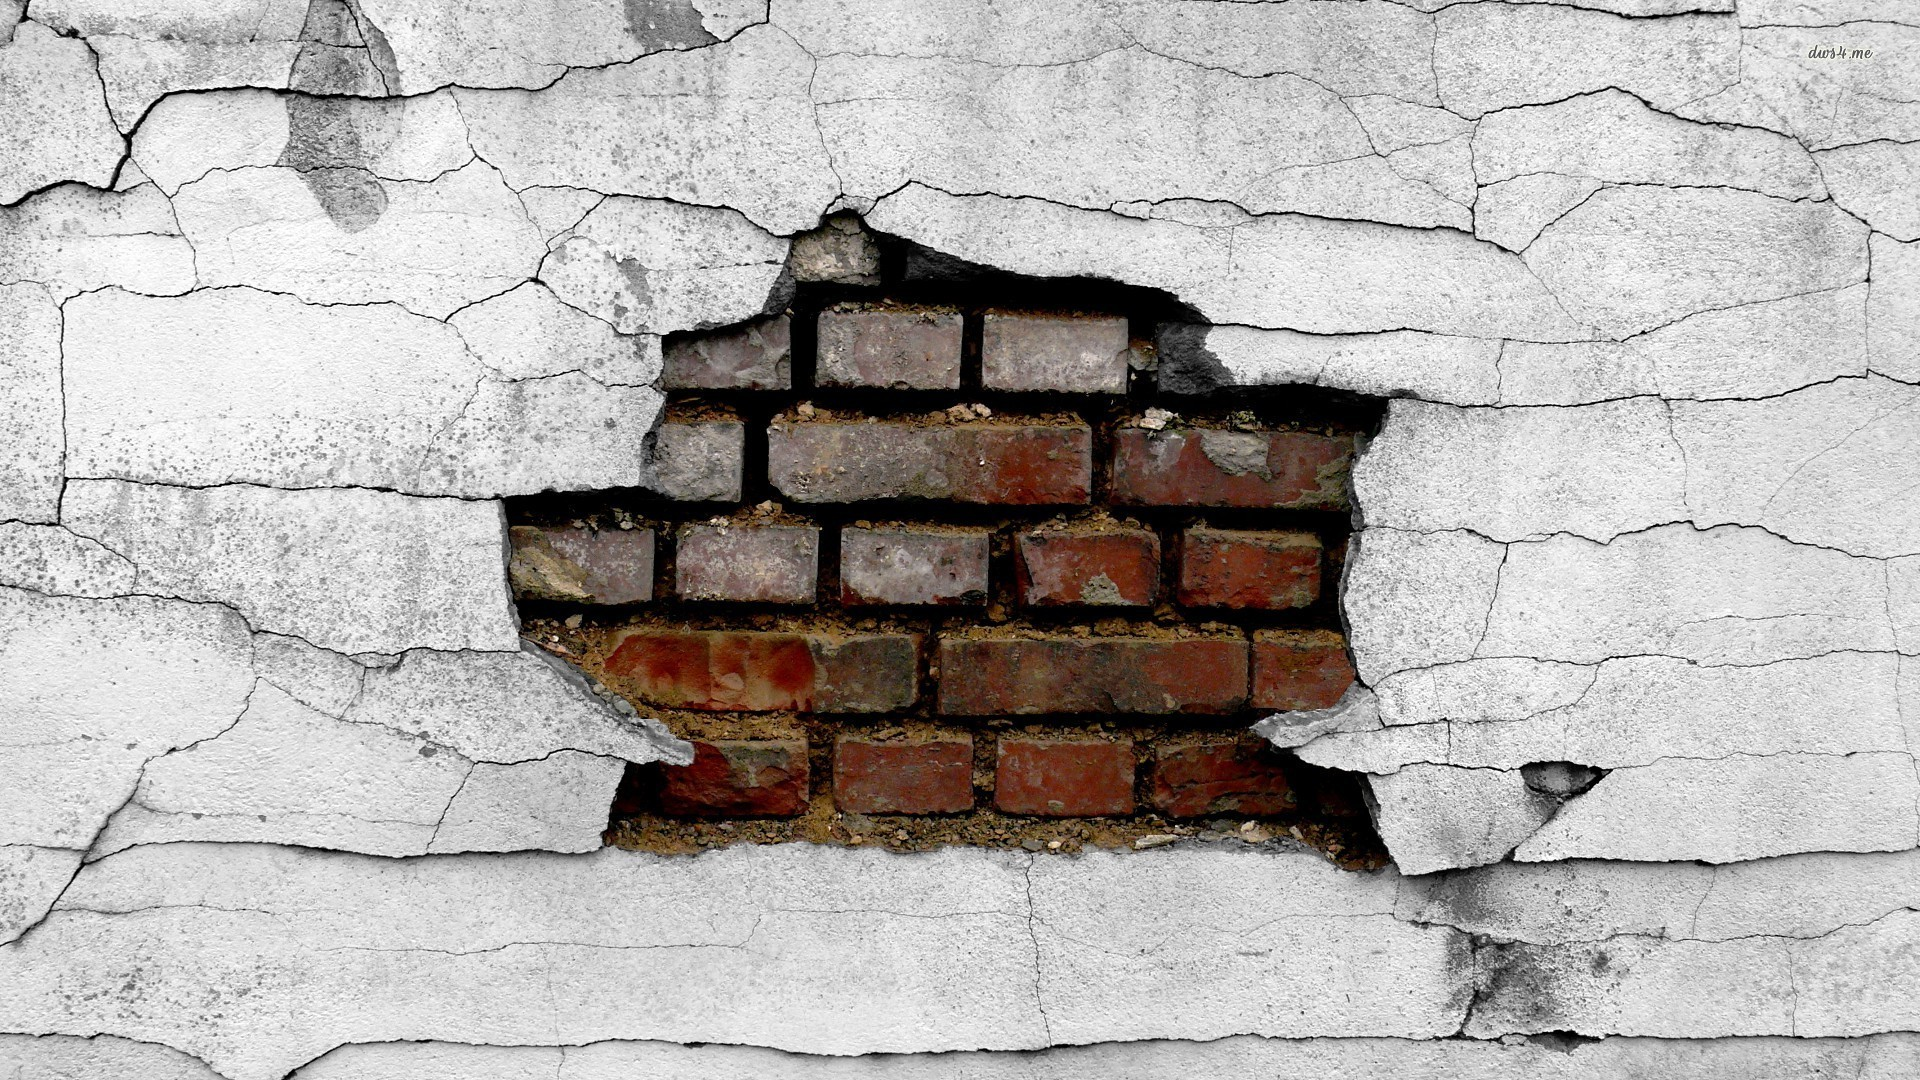 brick wallpaper cracked